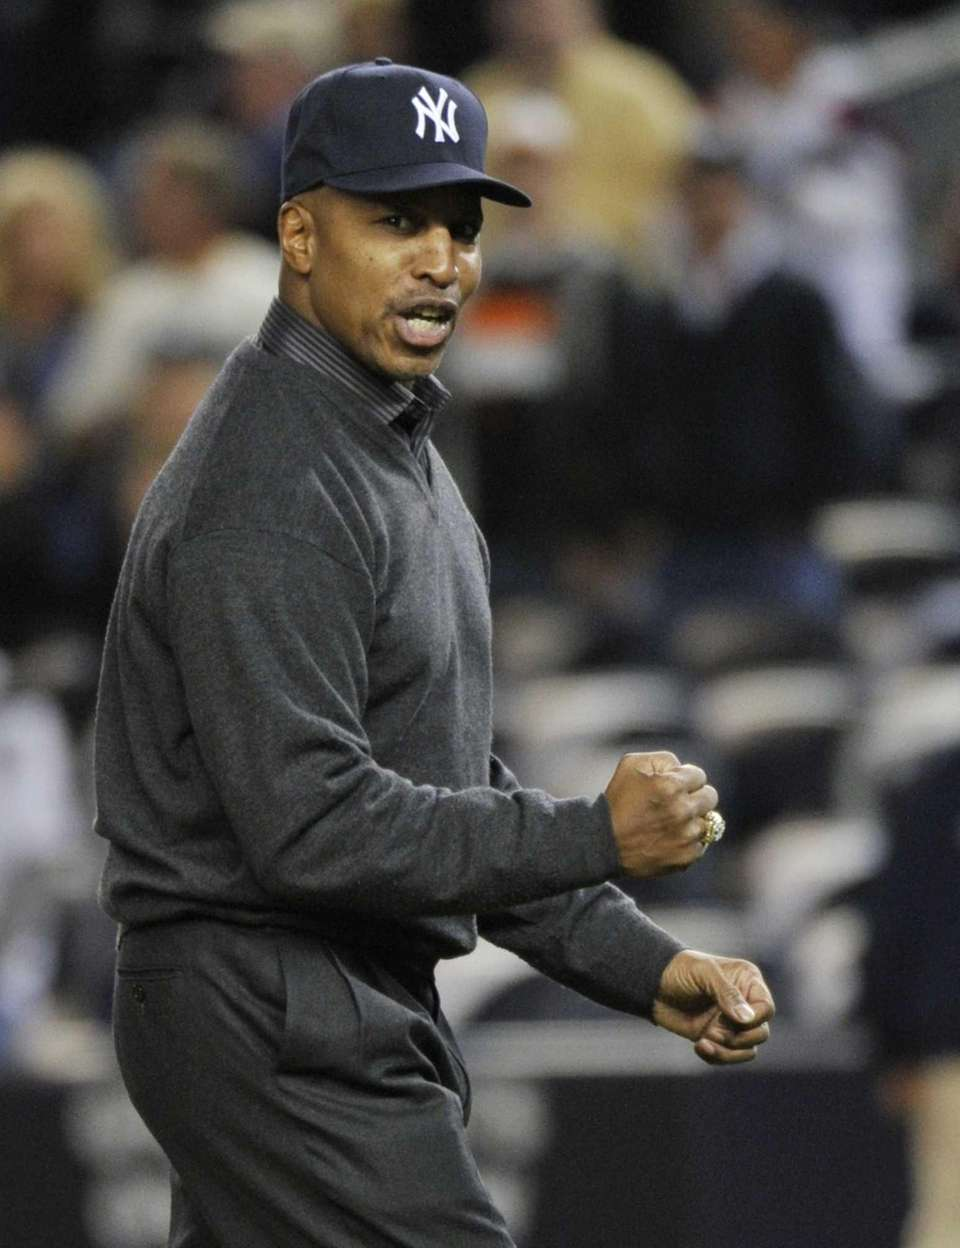 Former Major League player and manager Willie Randolph